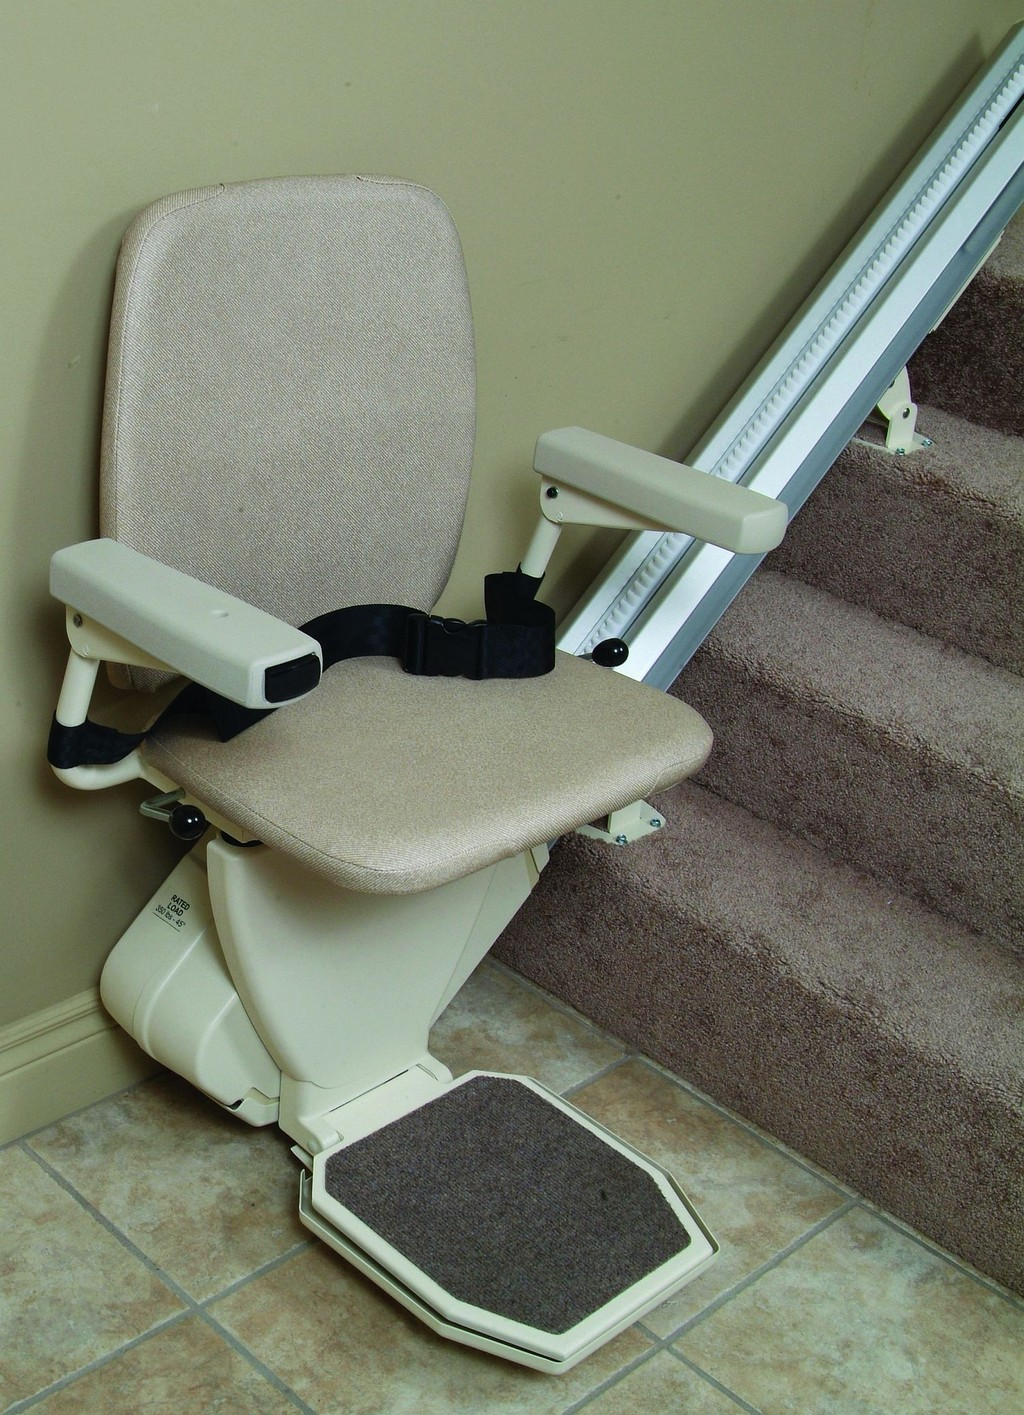 stannah stairlifts service us, sterling 950 stair lift, pride stairlifts, disabled stair lift